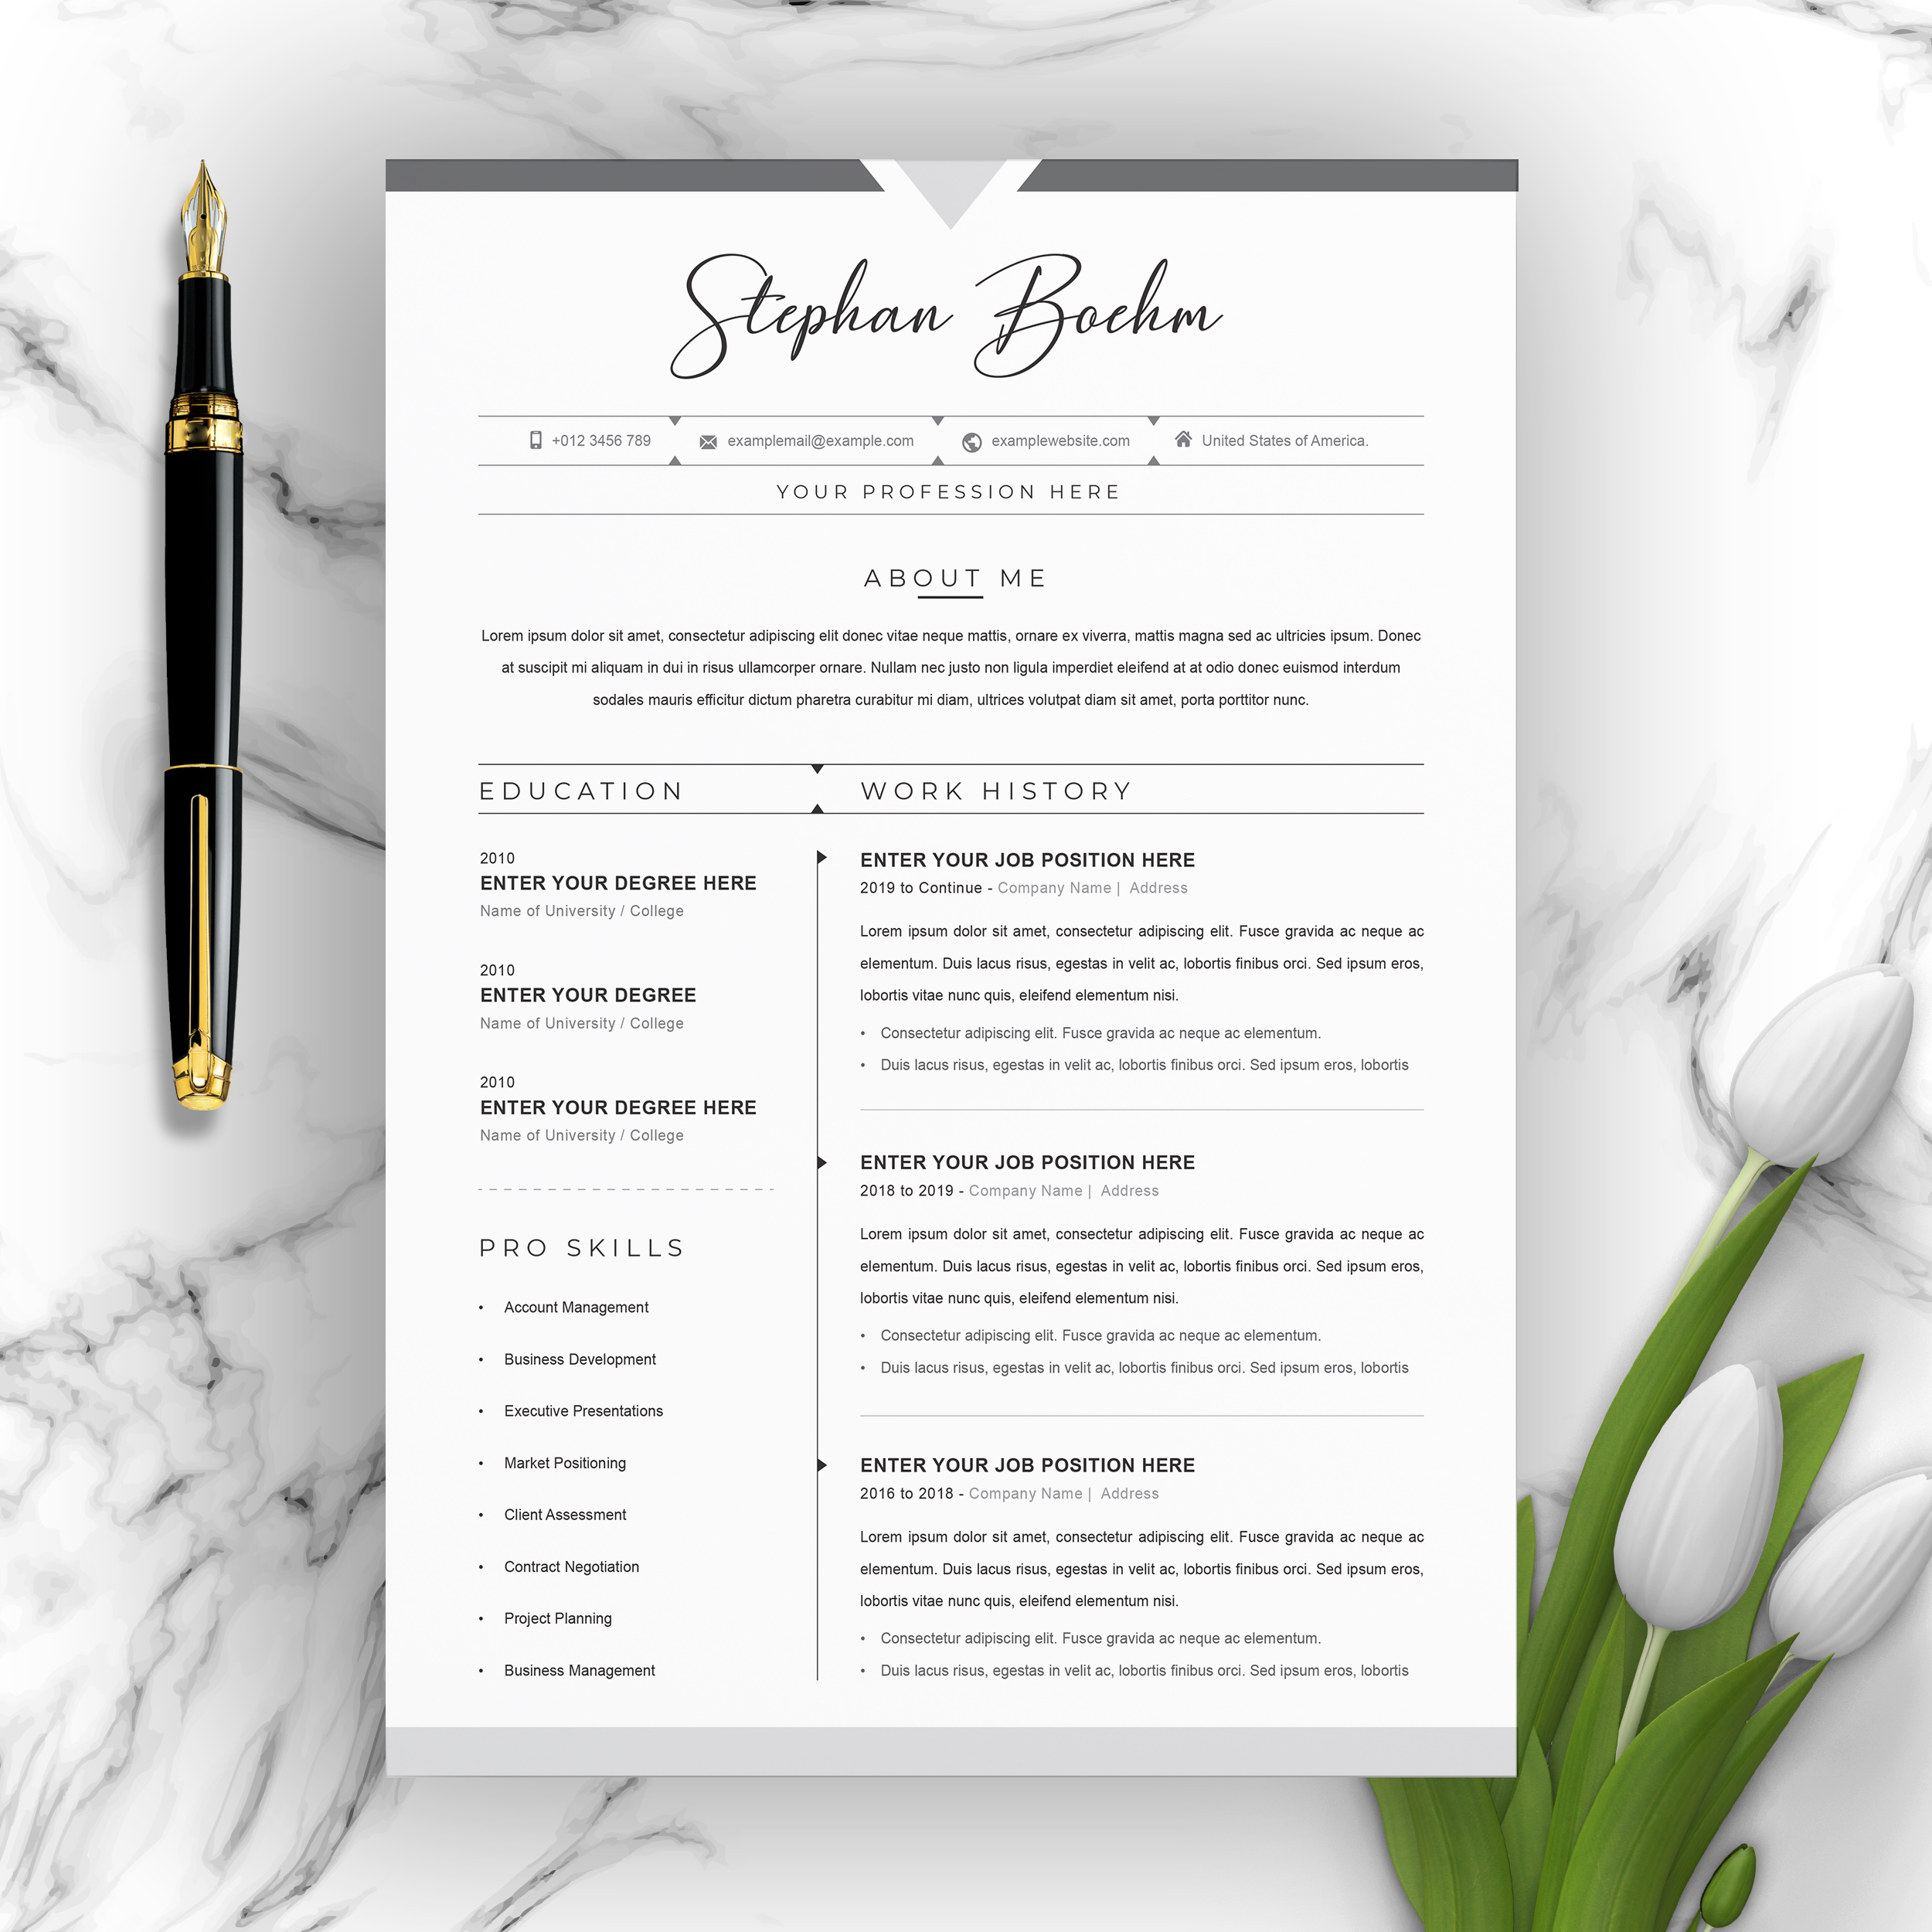 Clean Resume / CV Template with MS Word Cover Letter - Crella